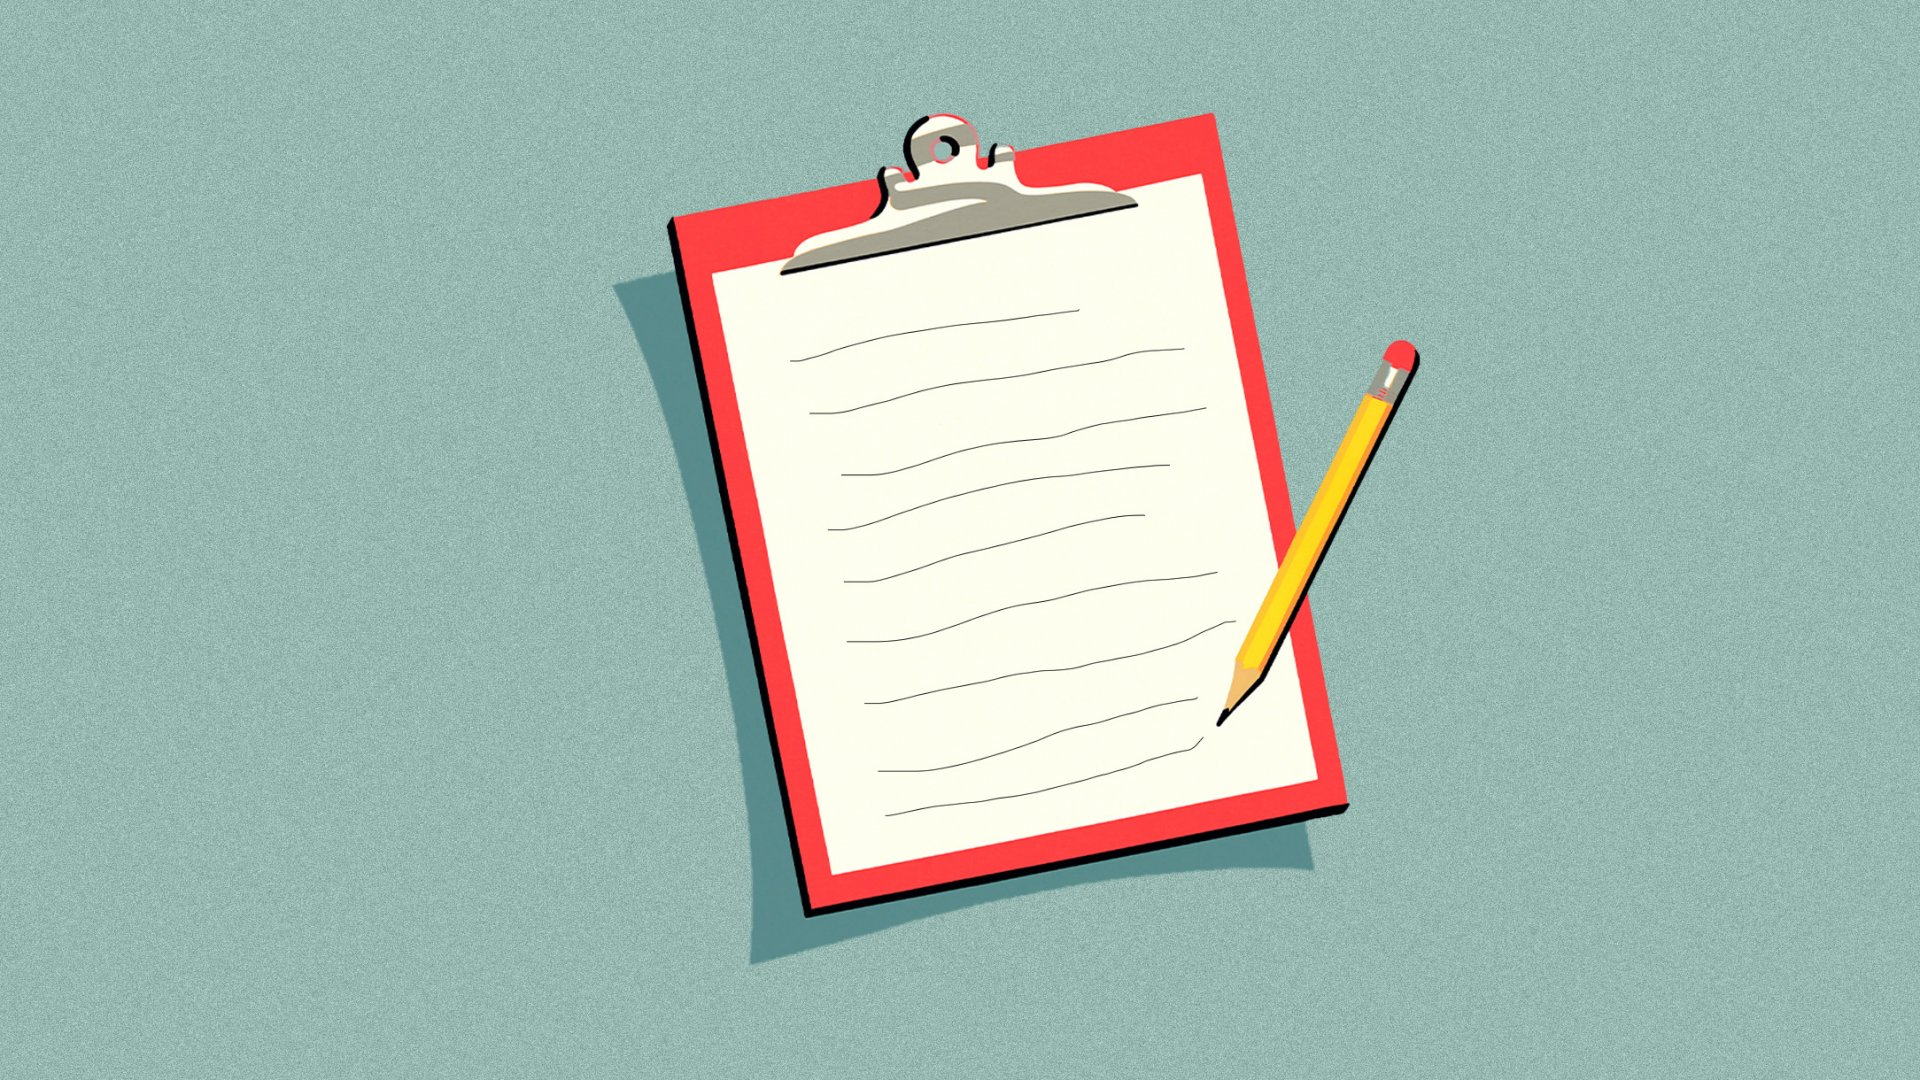 No Plan for 2021? No Problem. Use a Project Charter to Get Focus